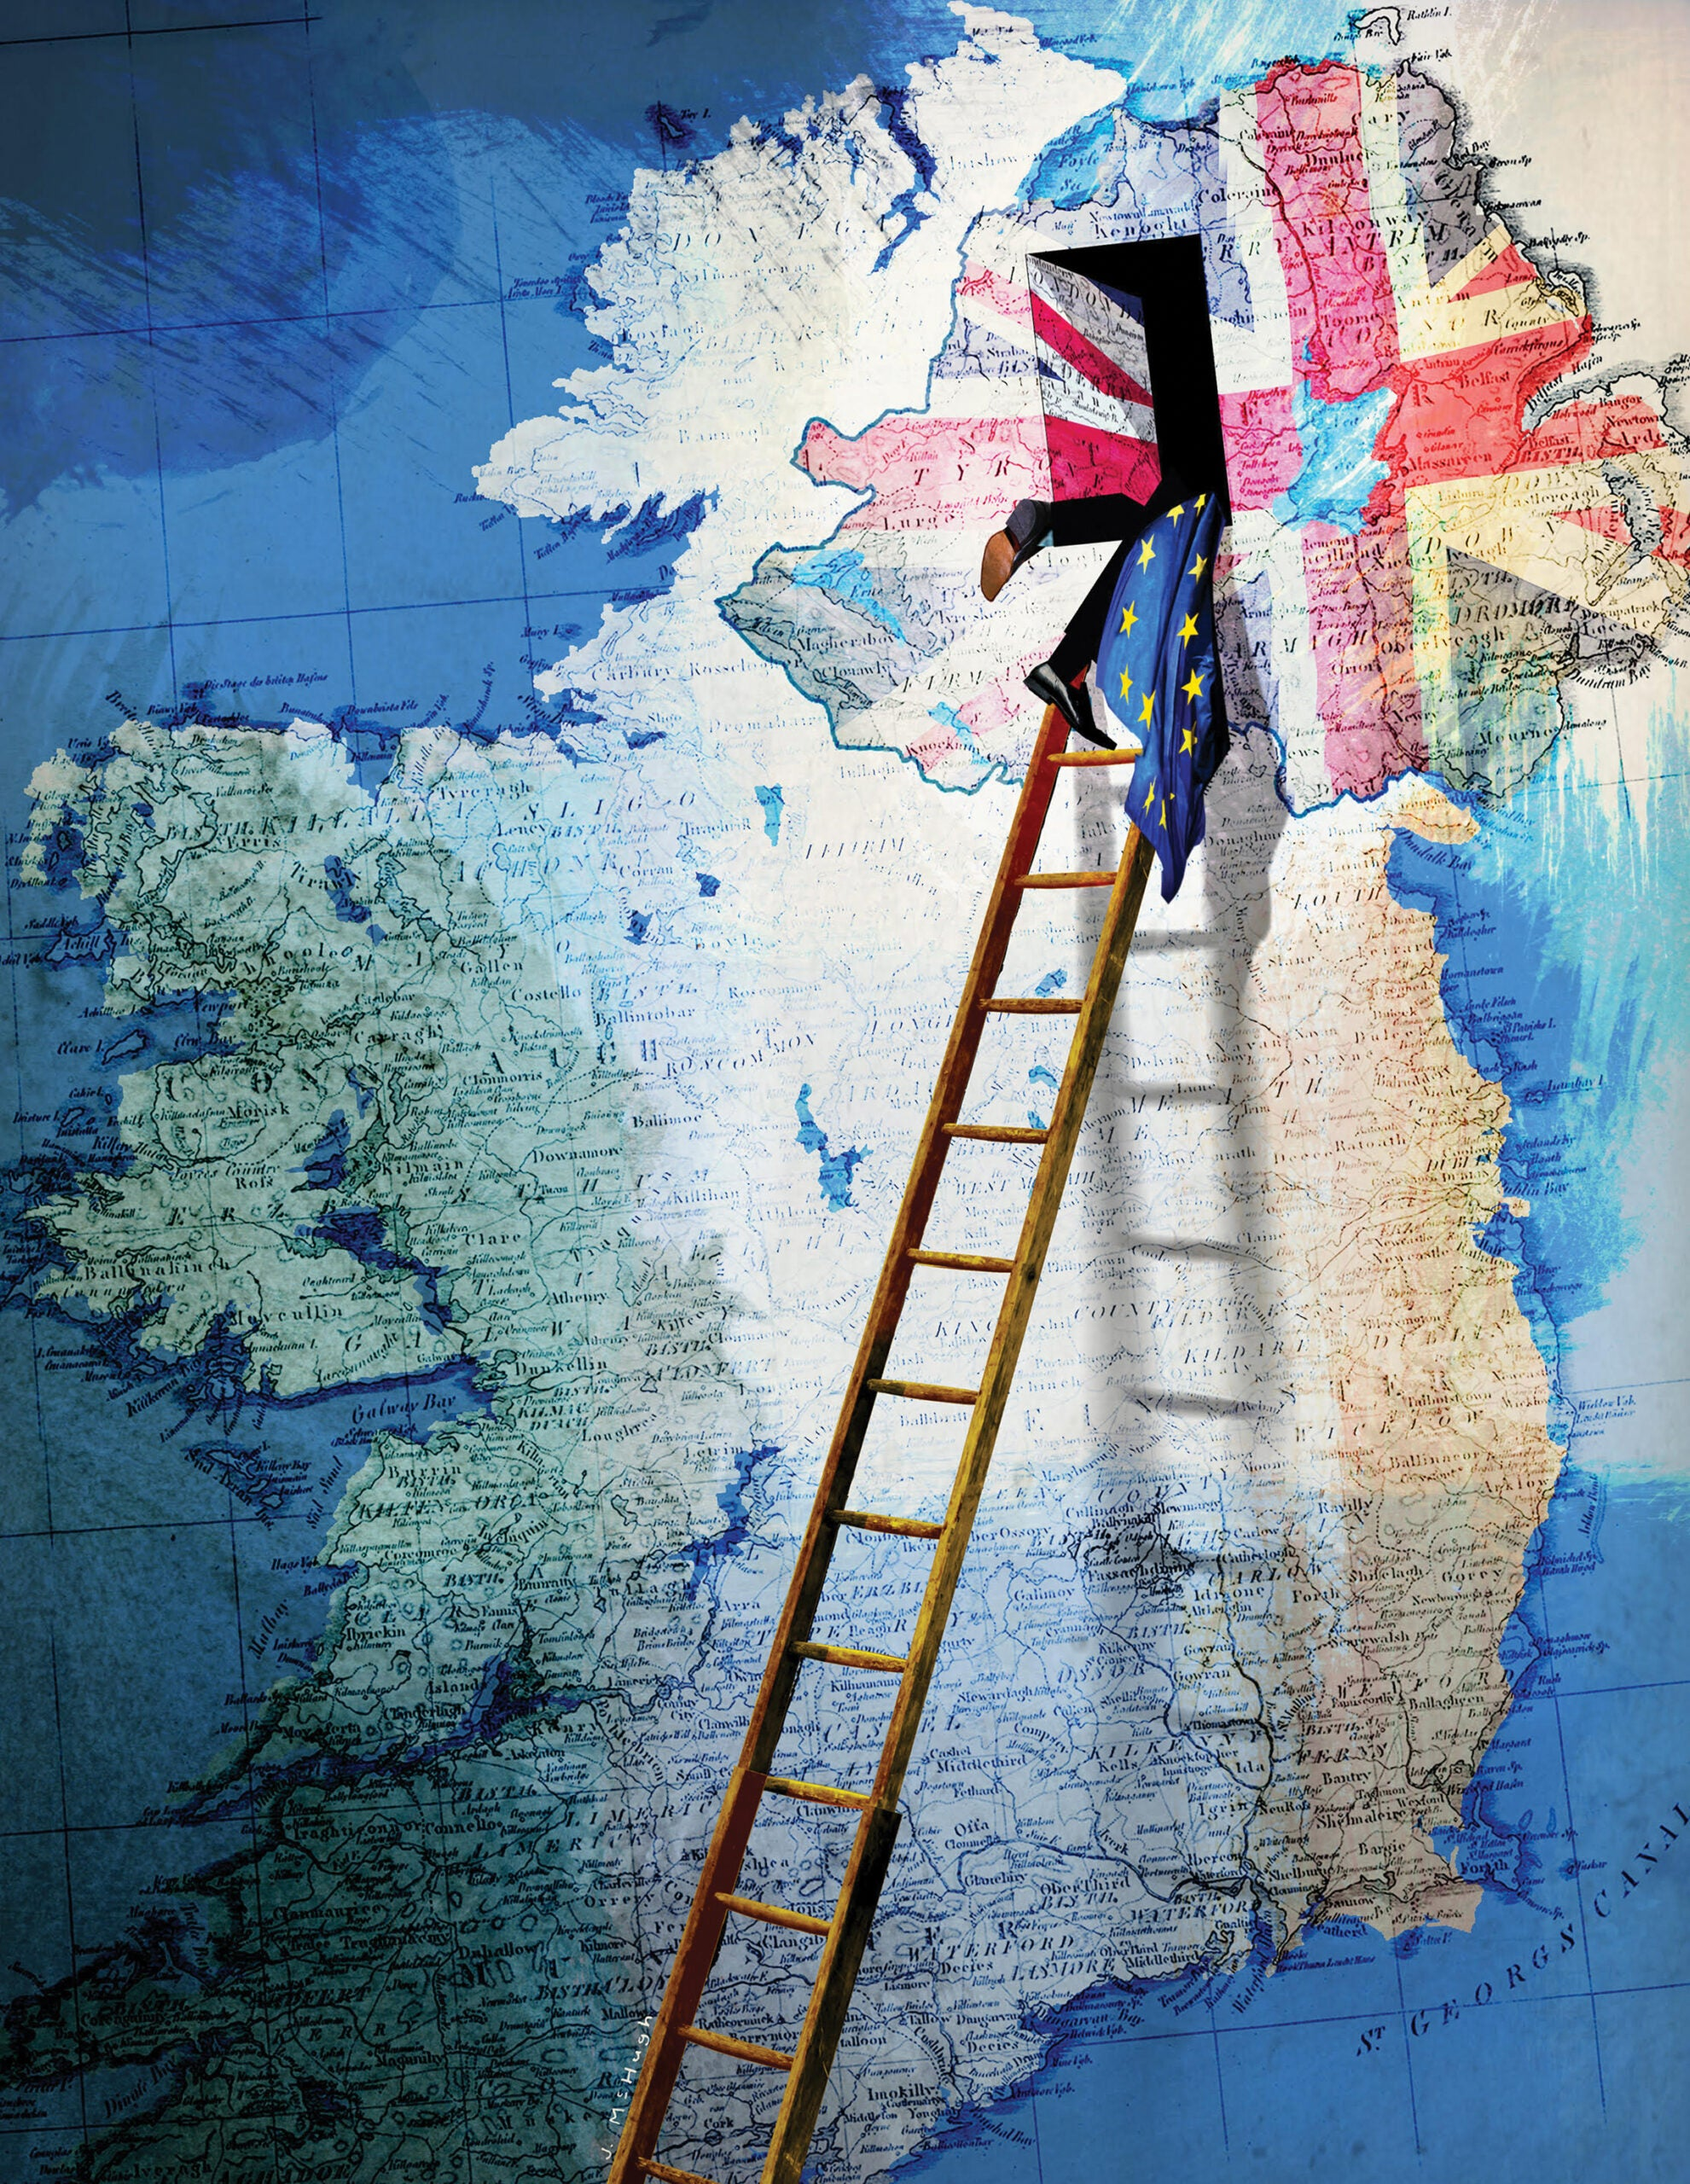 From backdoor to backstop: Ireland's shifting relationship with Britain and Europe